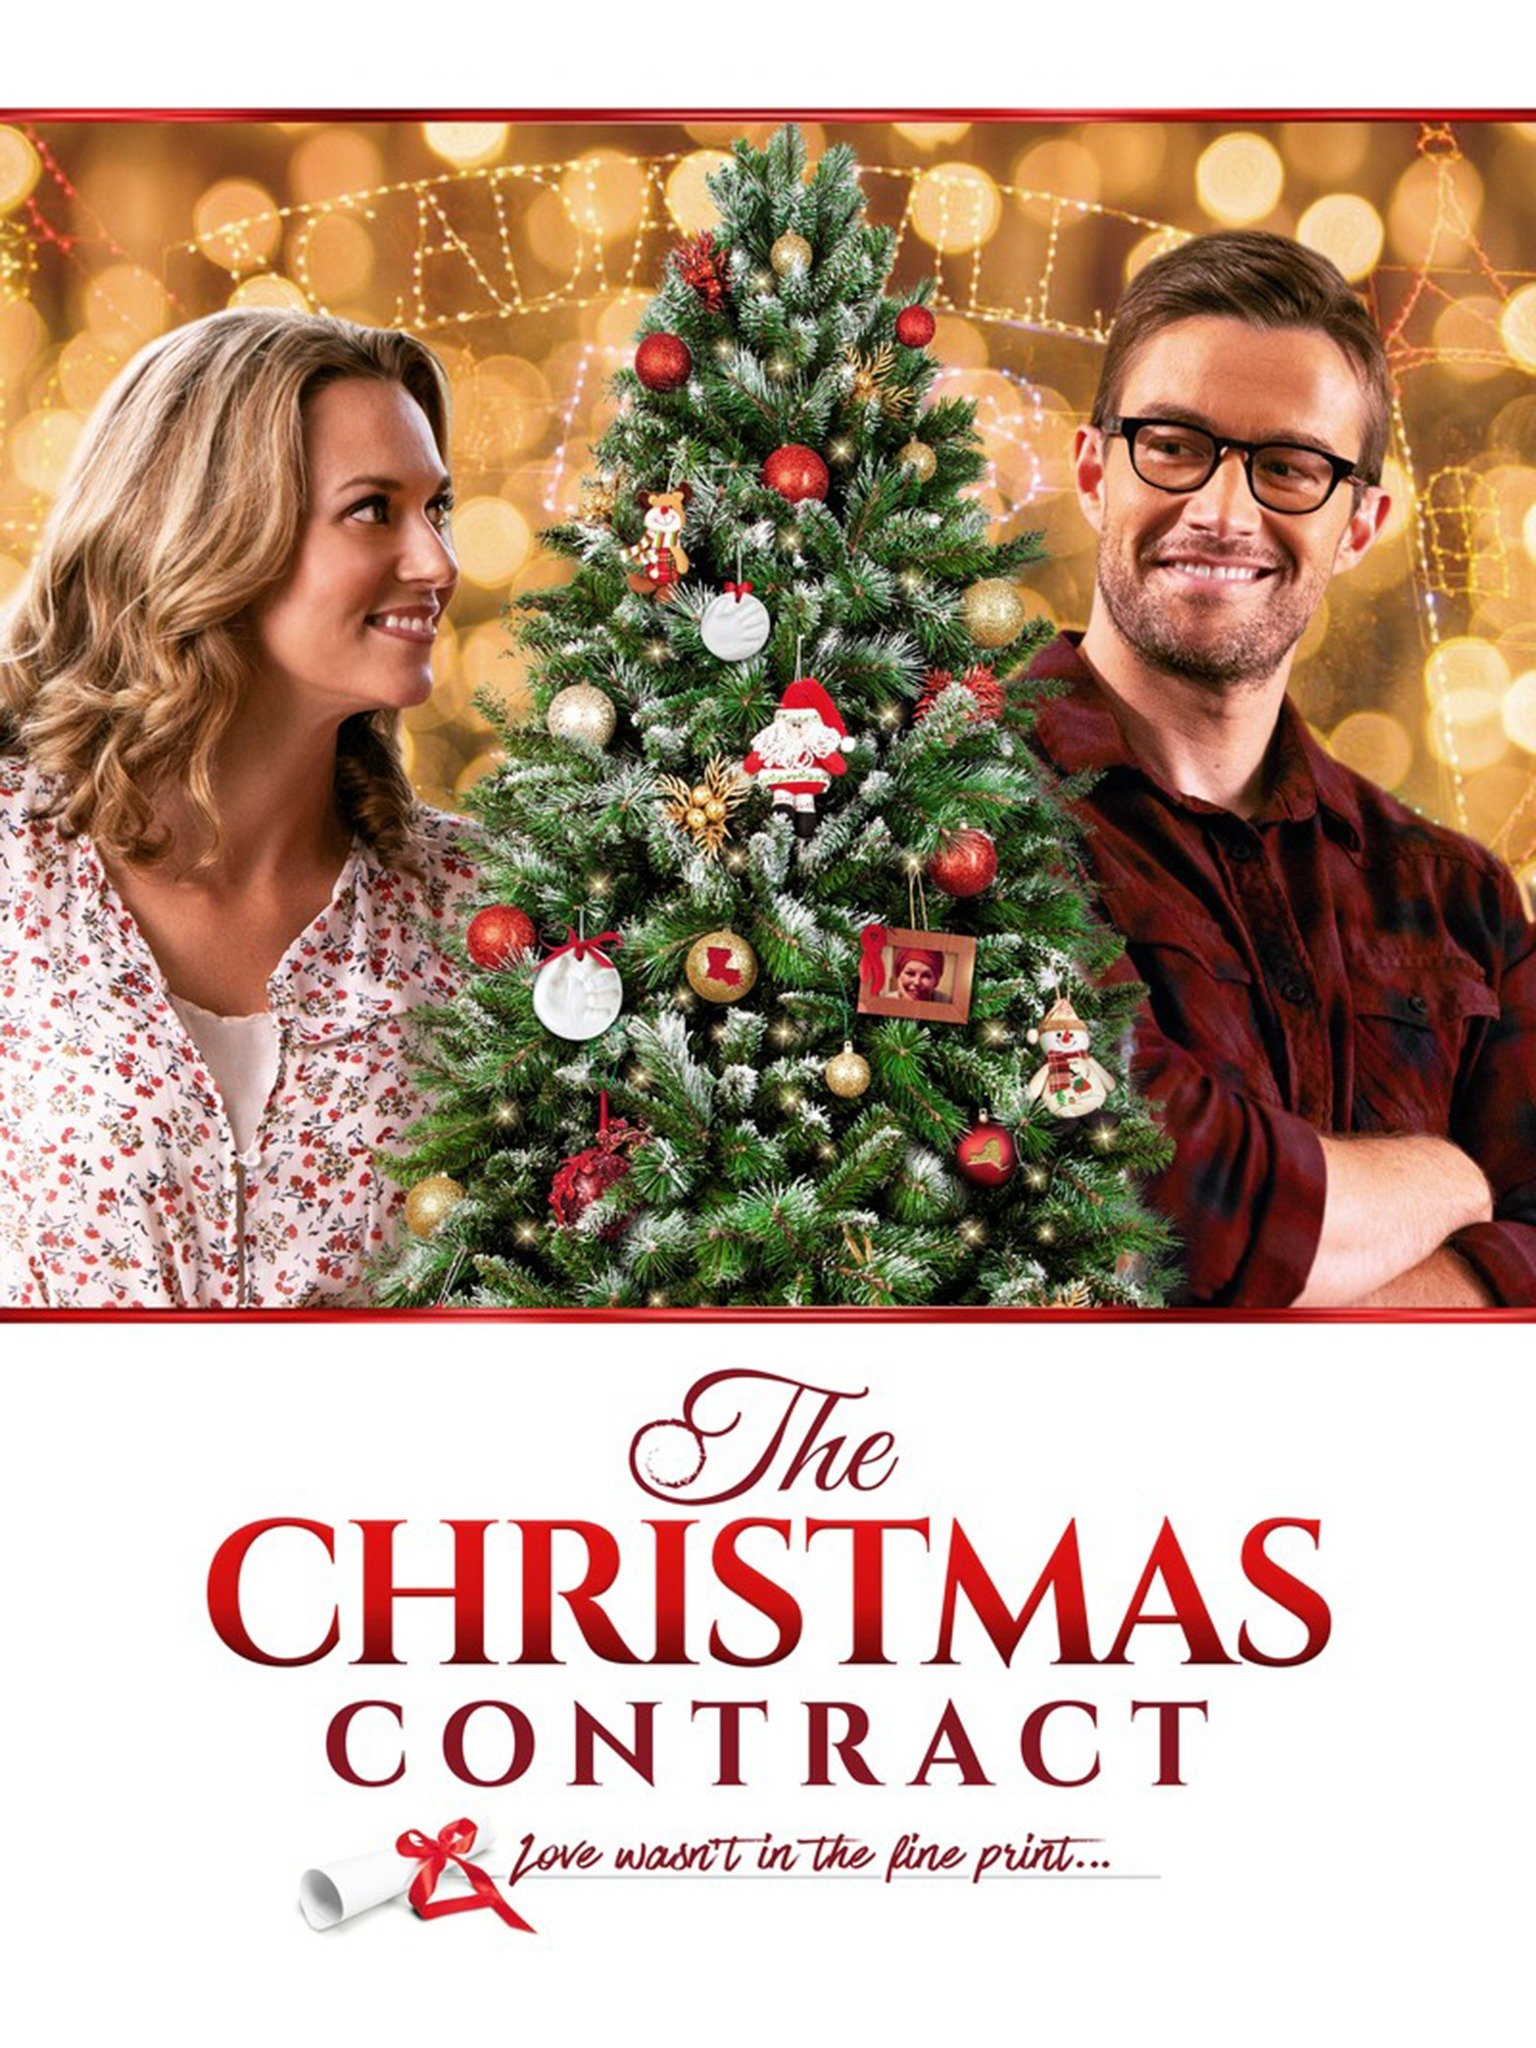 The Christmas Contract